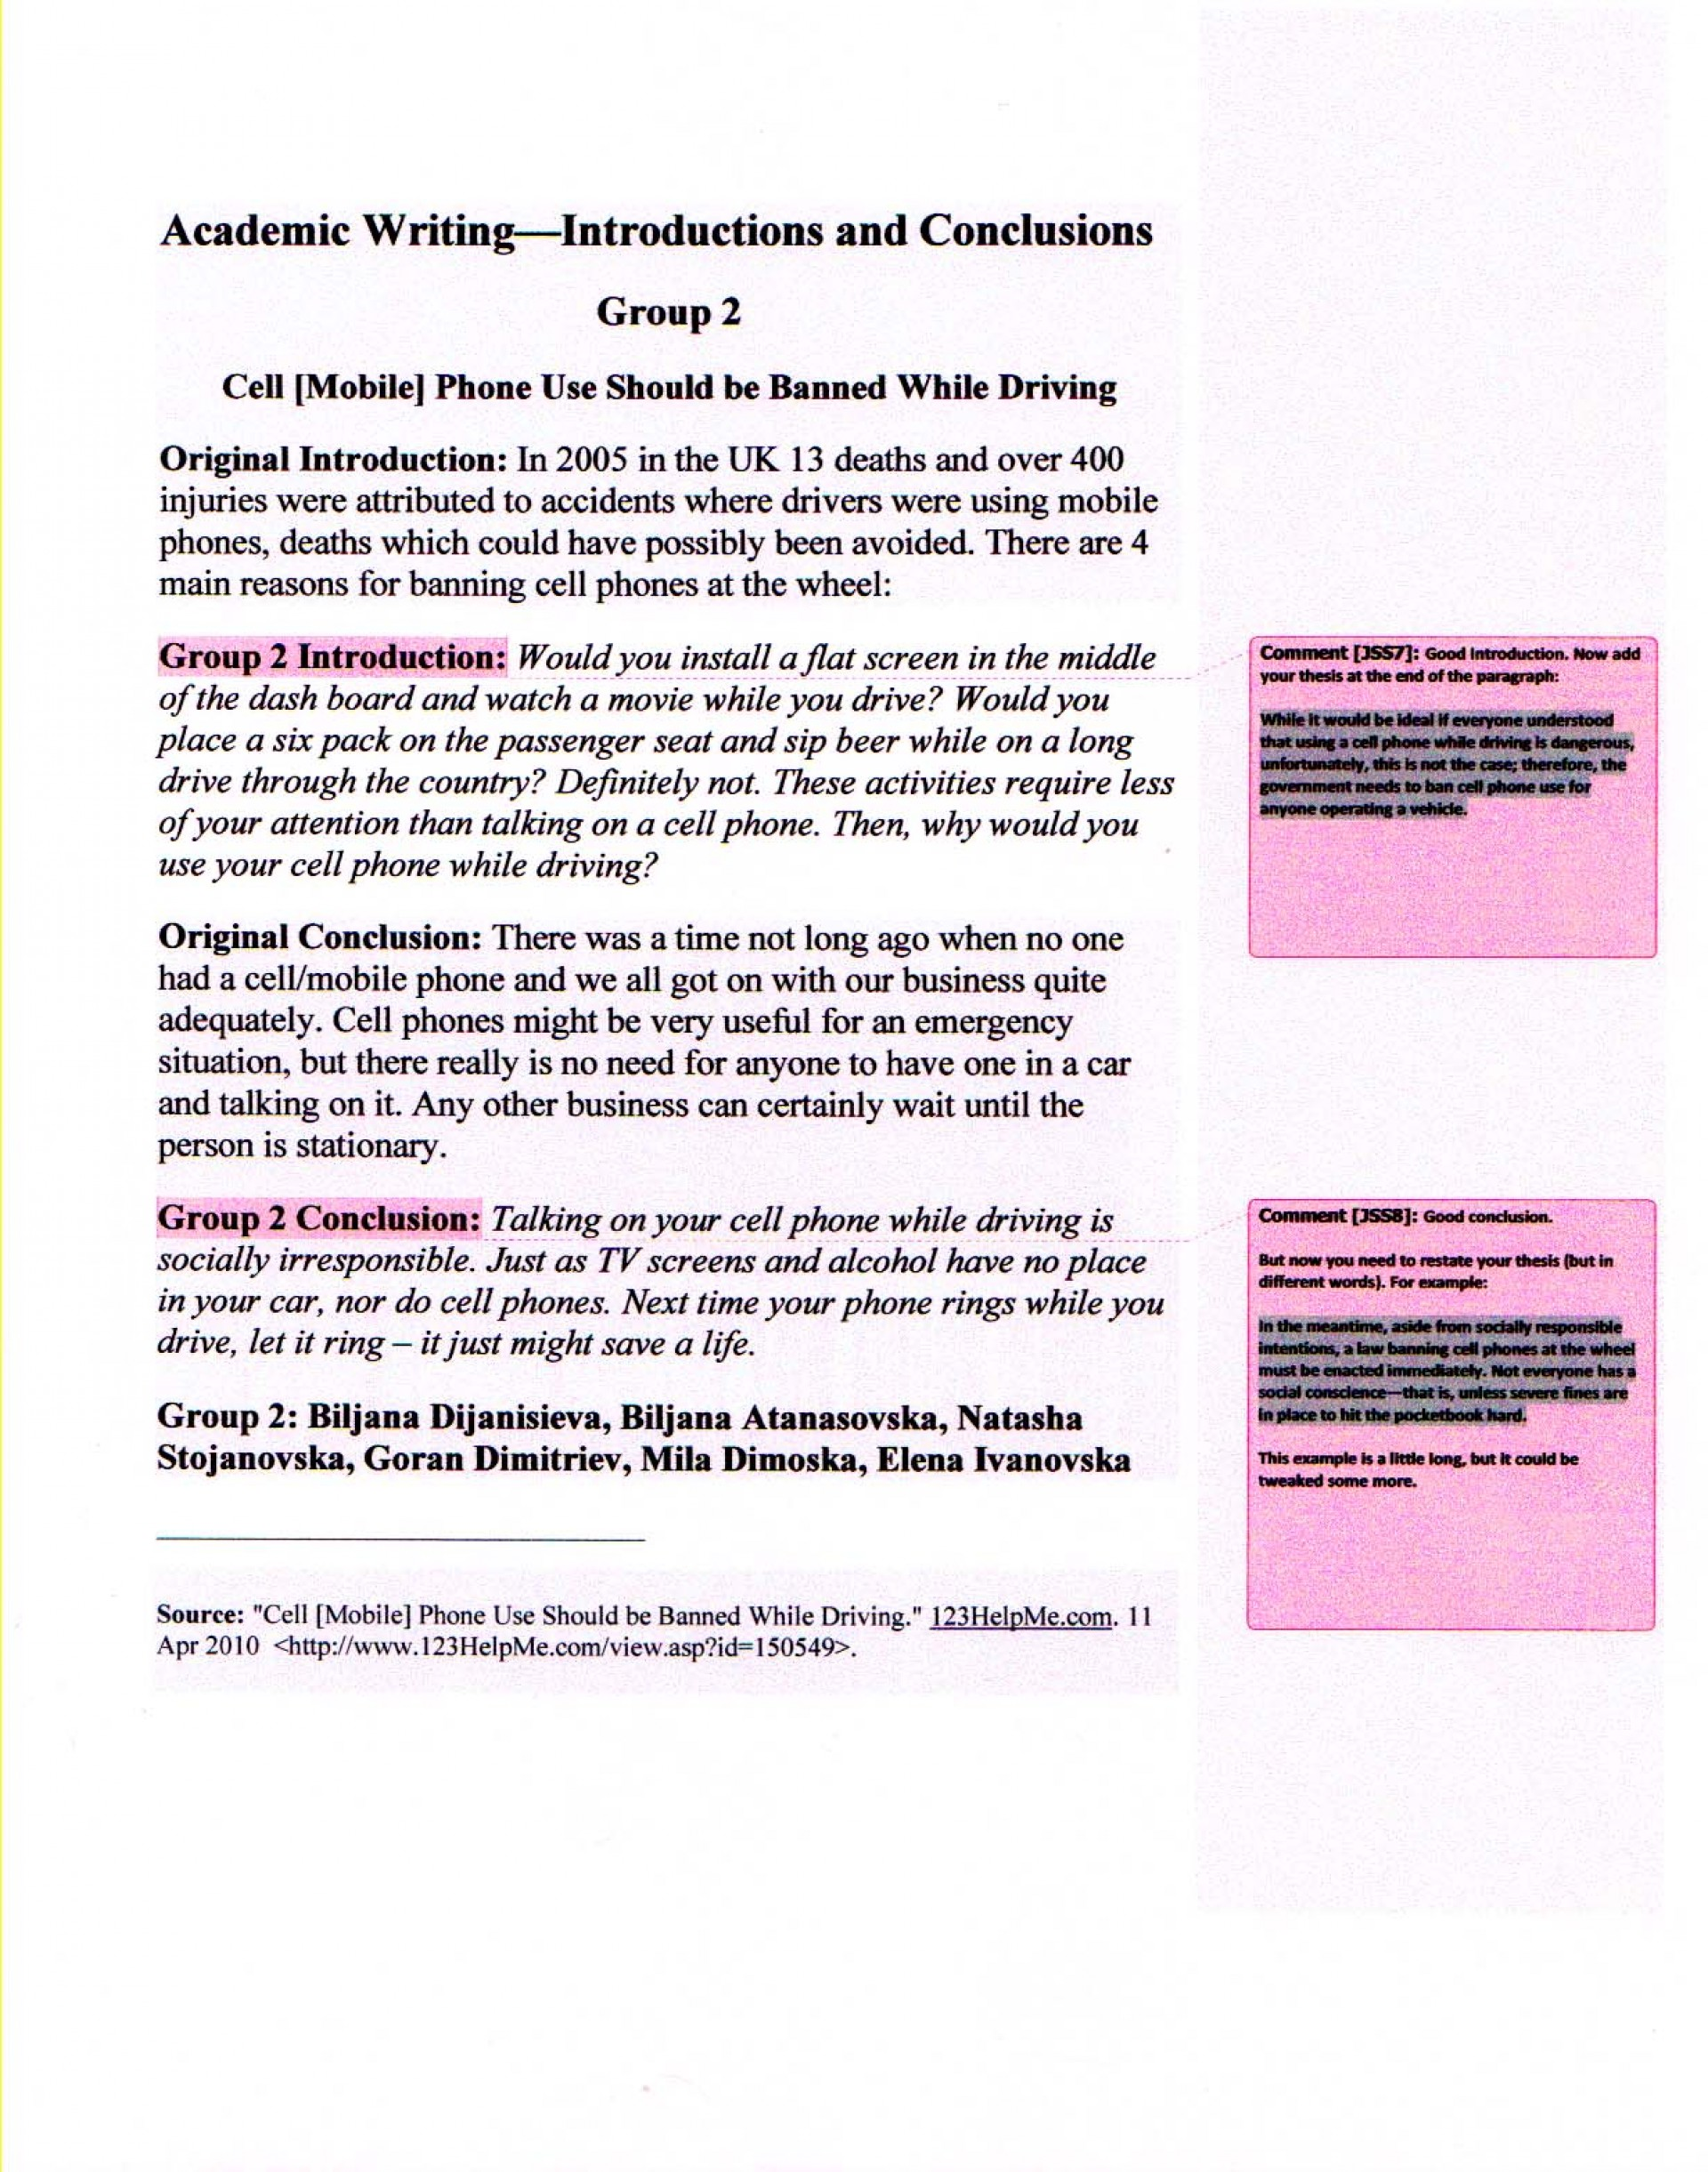 007 Texting While Driving Essay Example Academicwriting Blogintrosconclusions Wonderful And Outline Pdf 1920